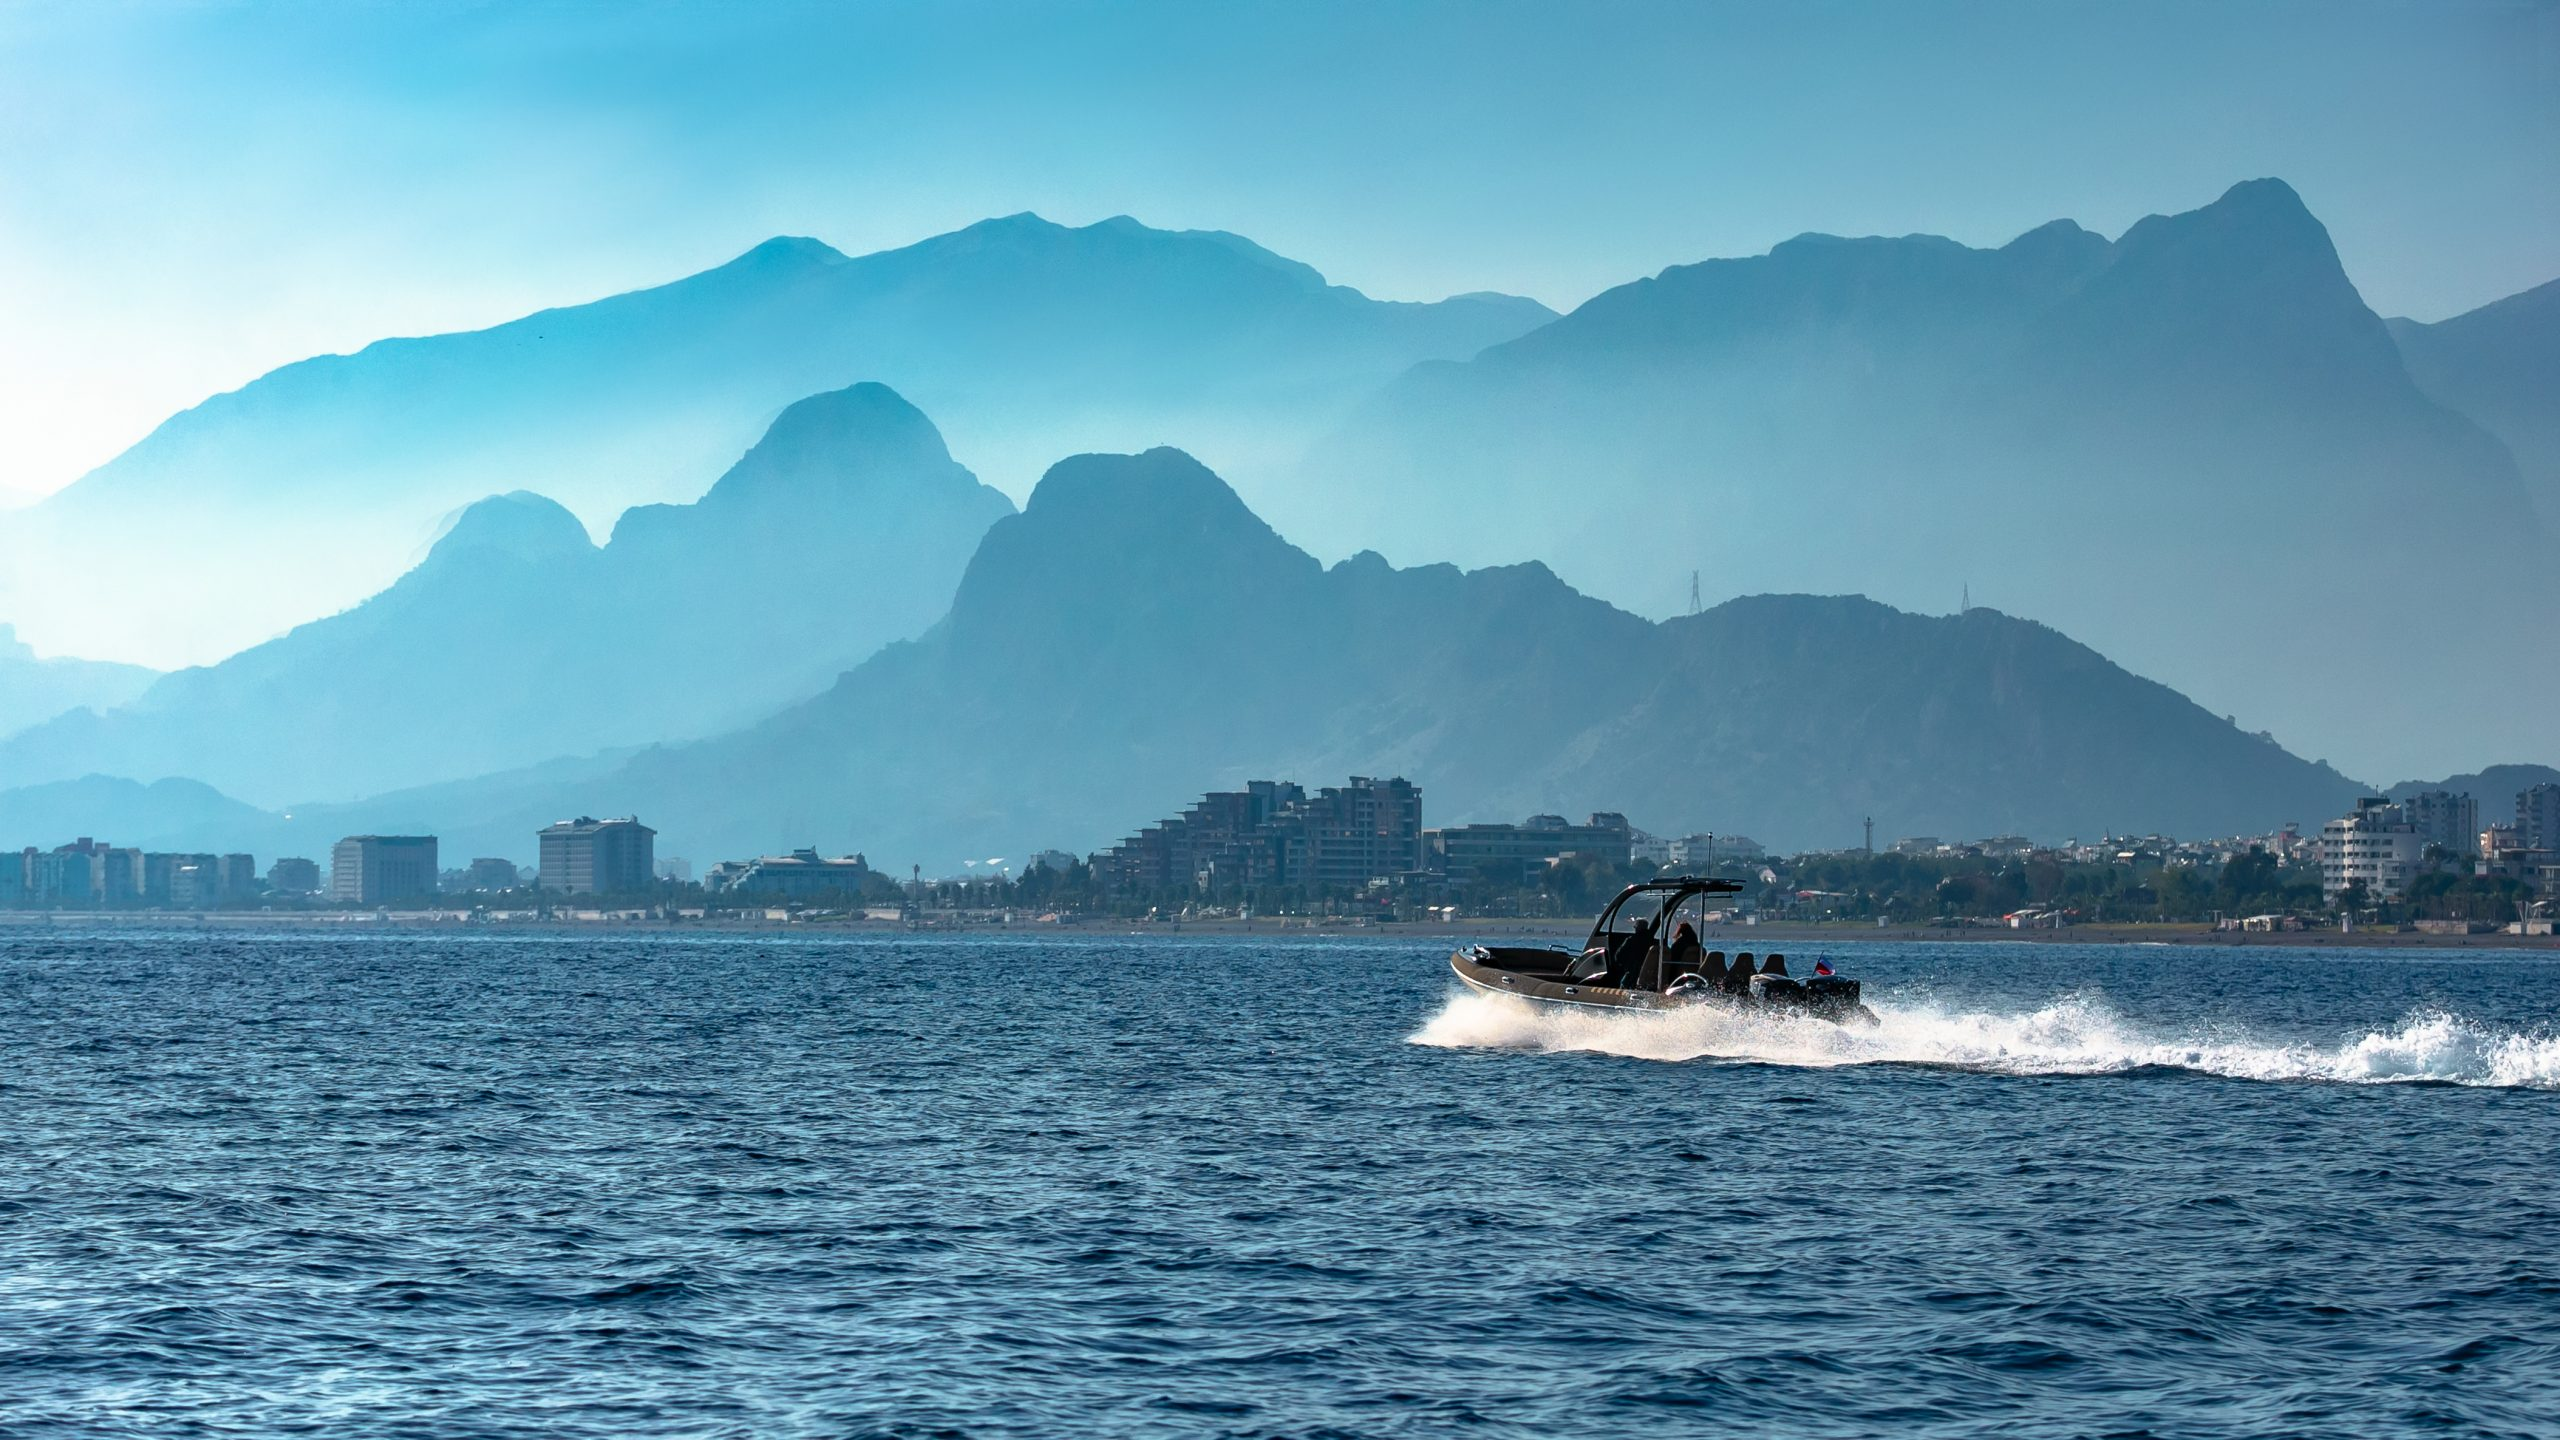 RHIBs on water in front of mountains